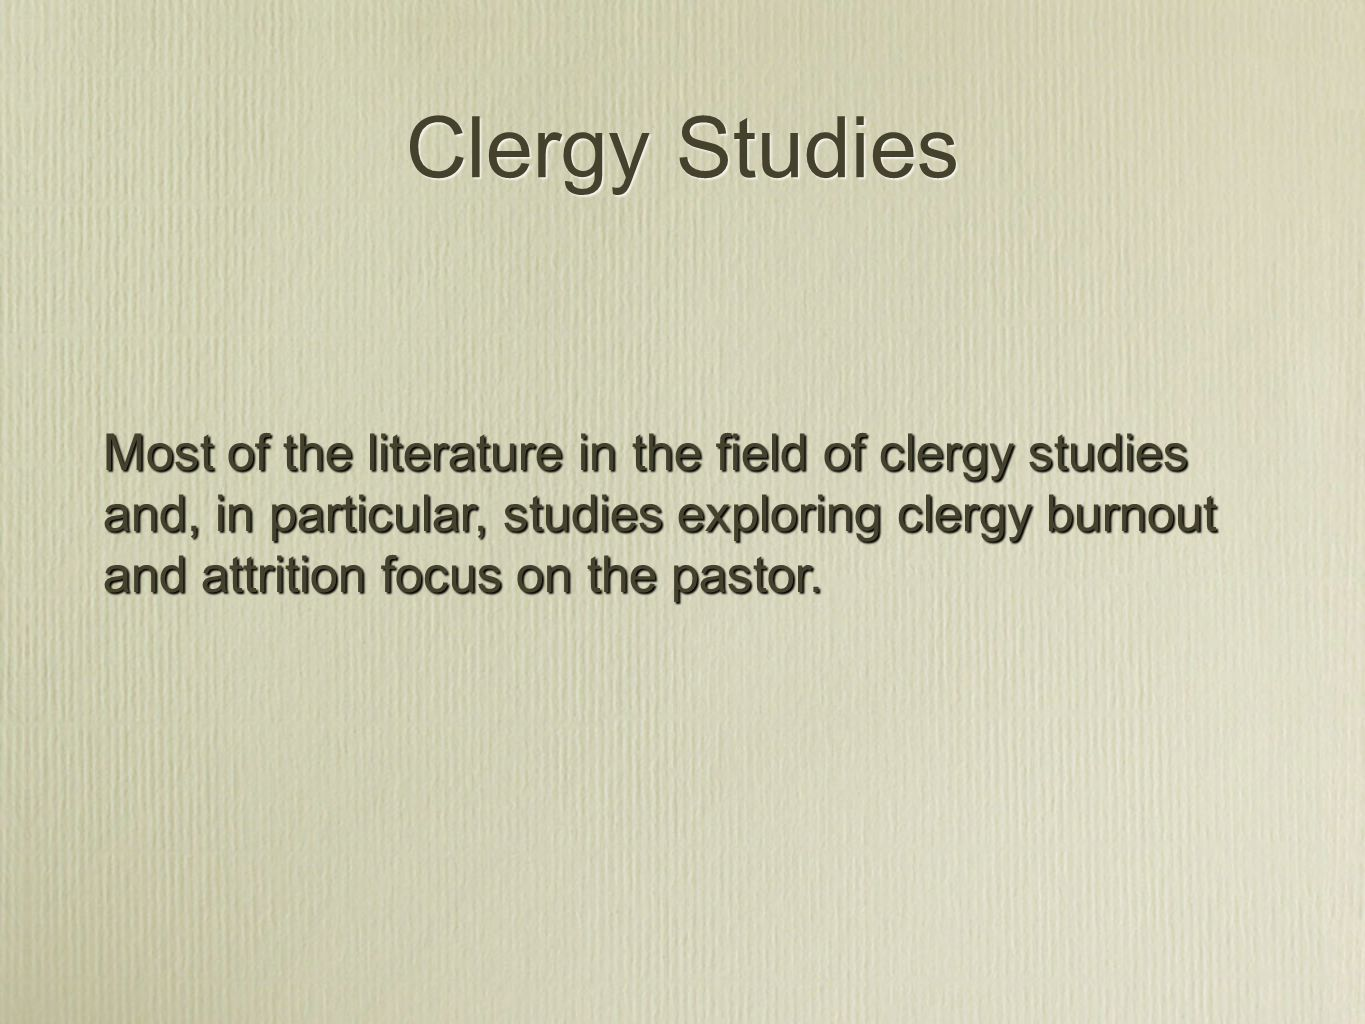 Clergy Studies Most of the literature in the field of clergy studies and, in particular, studies exploring clergy burnout and attrition focus on the pastor.